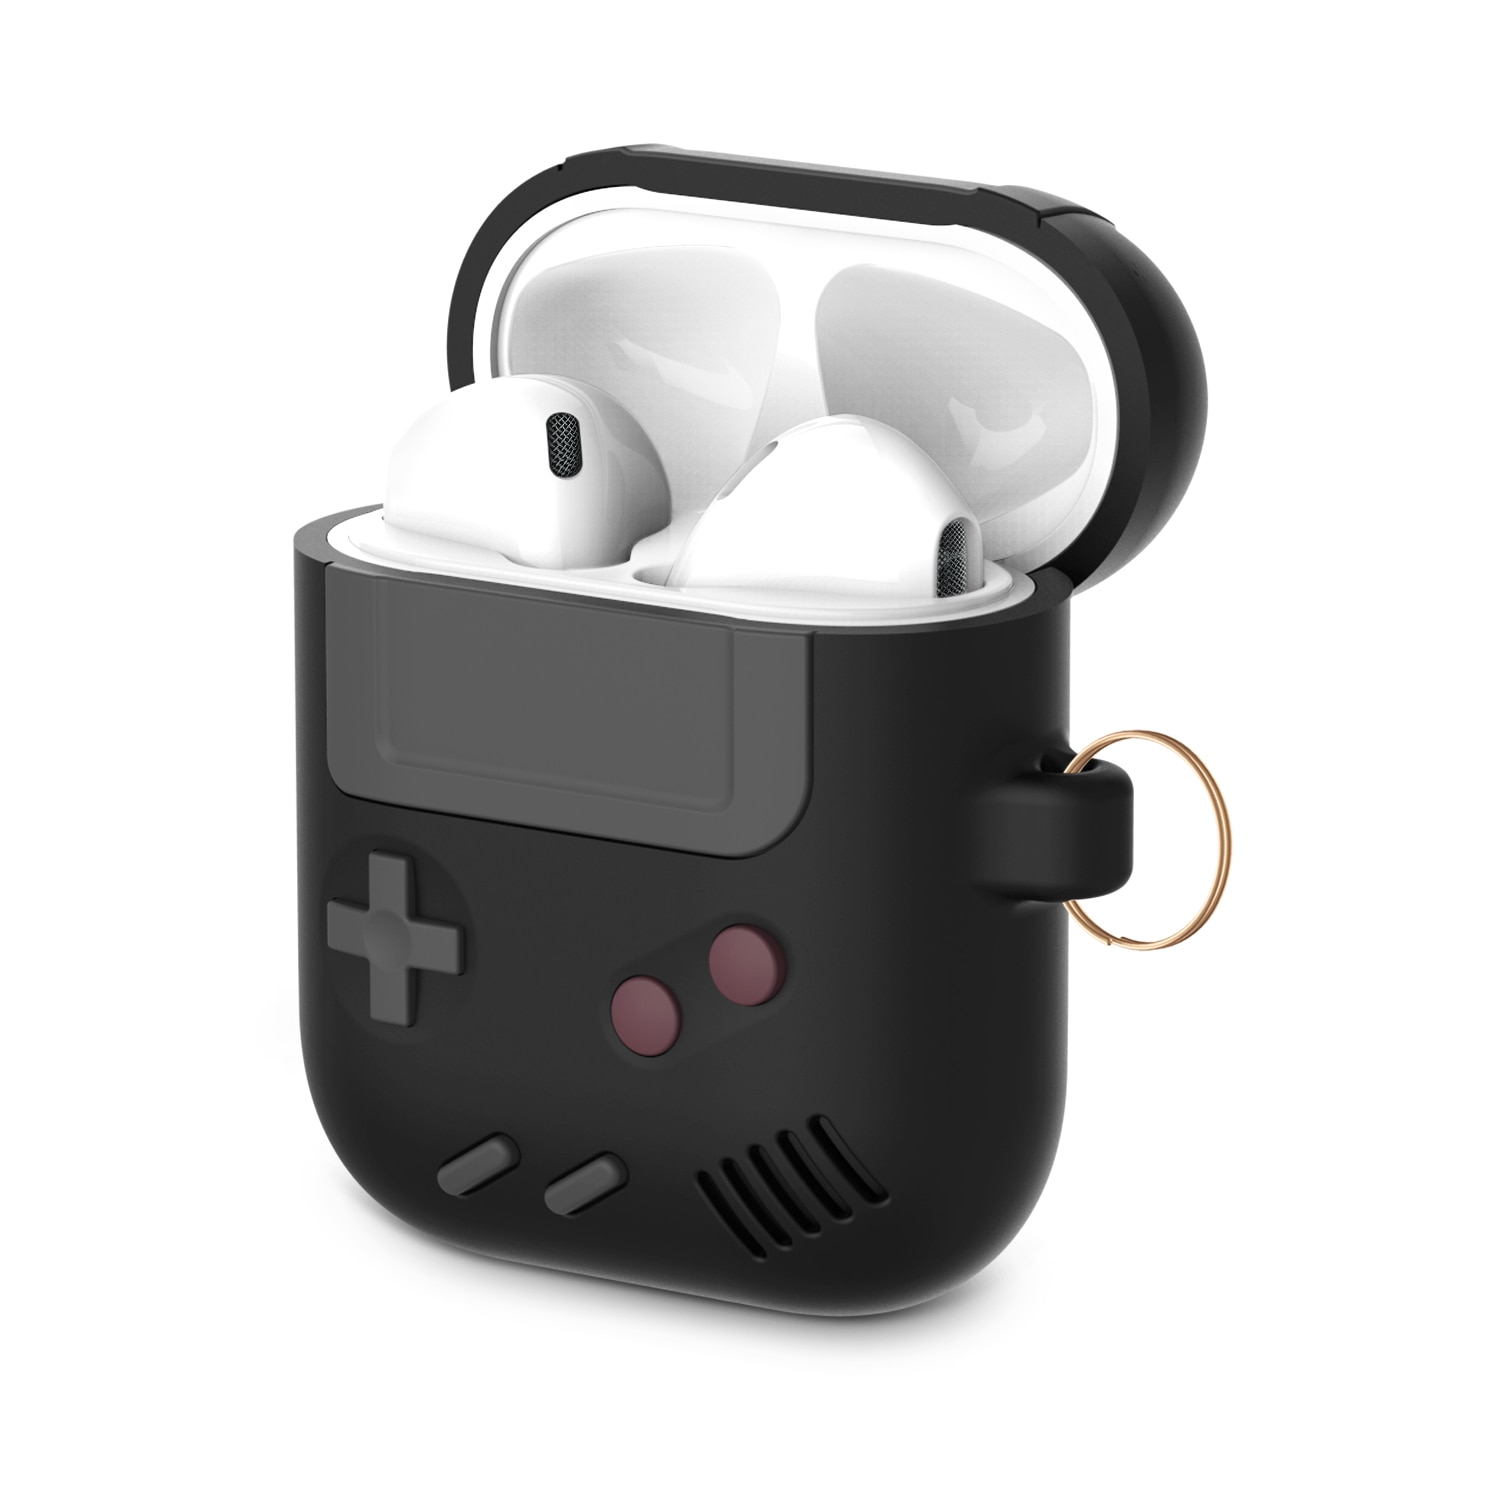 Silicone Earphone Case For Airpods 2 Protective Case For Apple airpods Pro 3 Wireless Bluetooth 3D Game Console Shockproof Cover